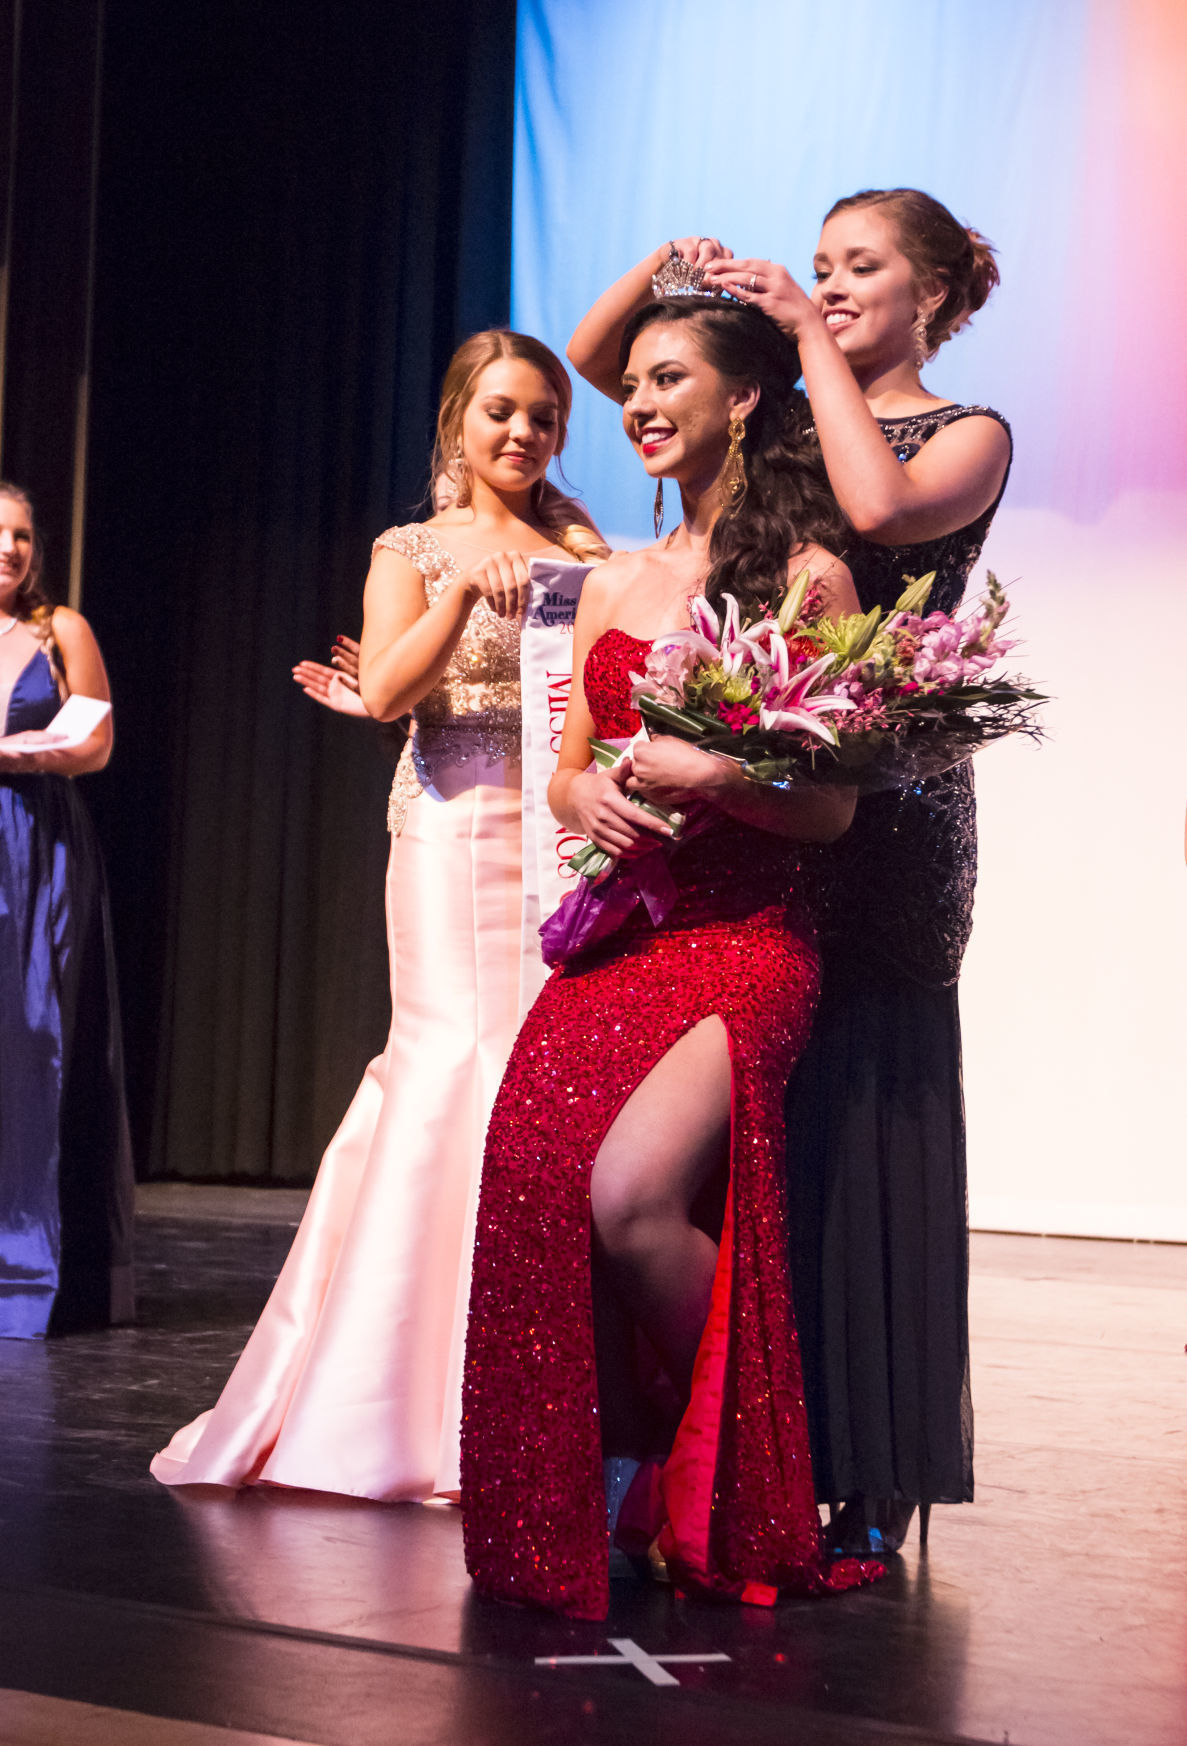 Sophia Medina, Miss Kings County 2018